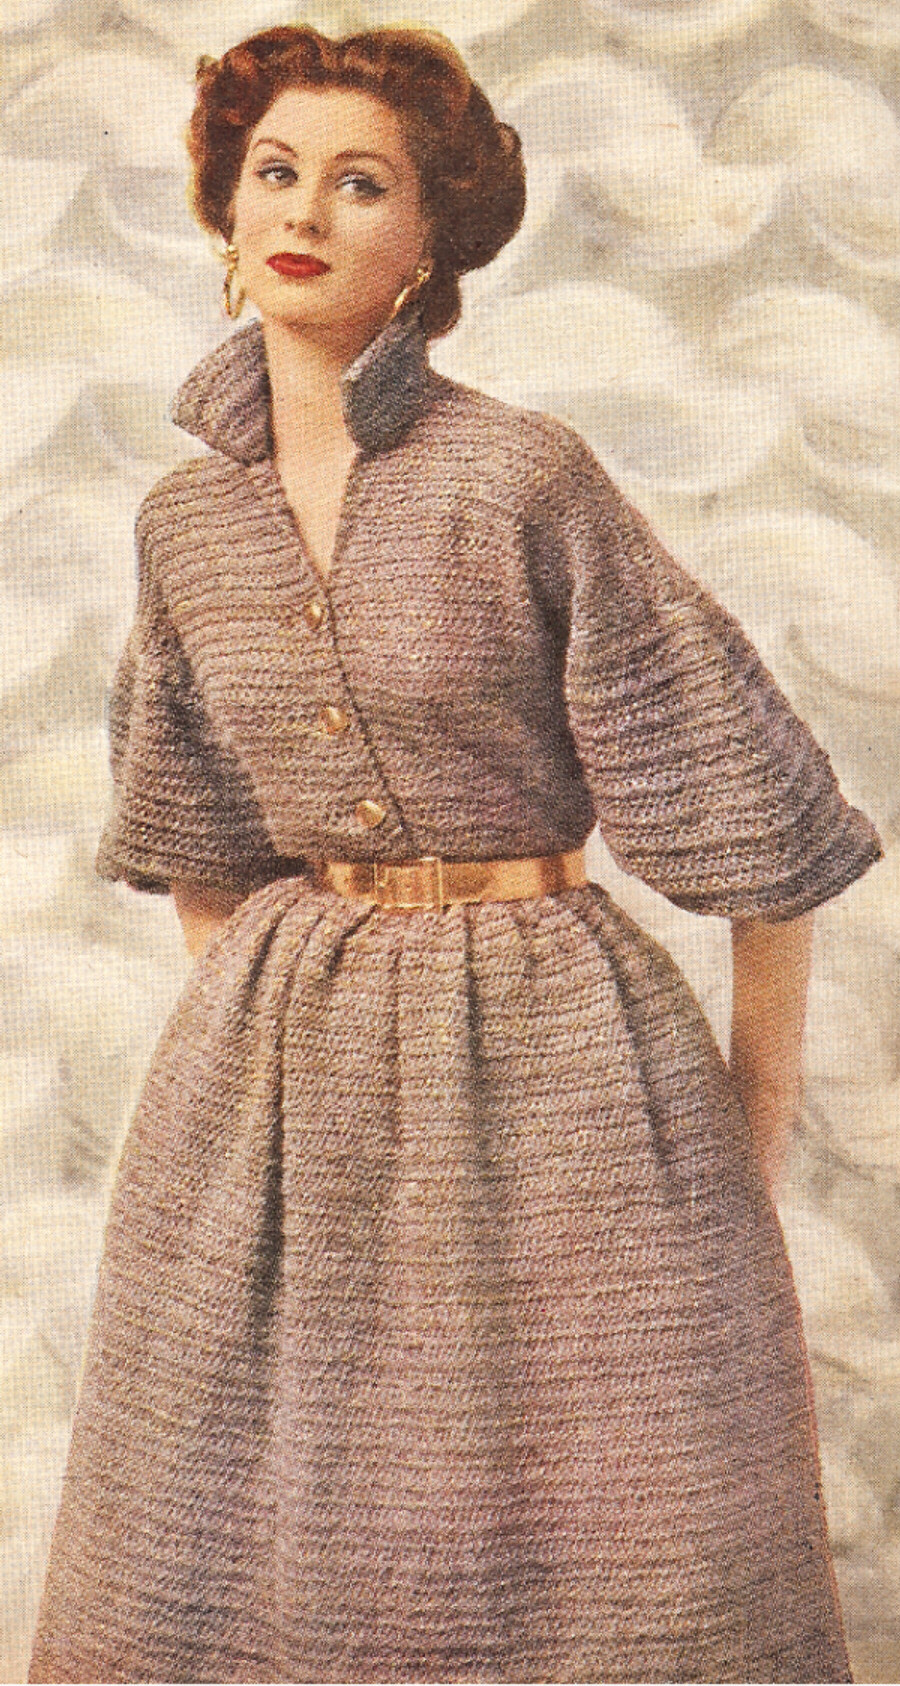 Unique Vintage Knitting Pattern to Make Quick Knit Designer Dress Designer Knitting Patterns Of Incredible 48 Pics Designer Knitting Patterns